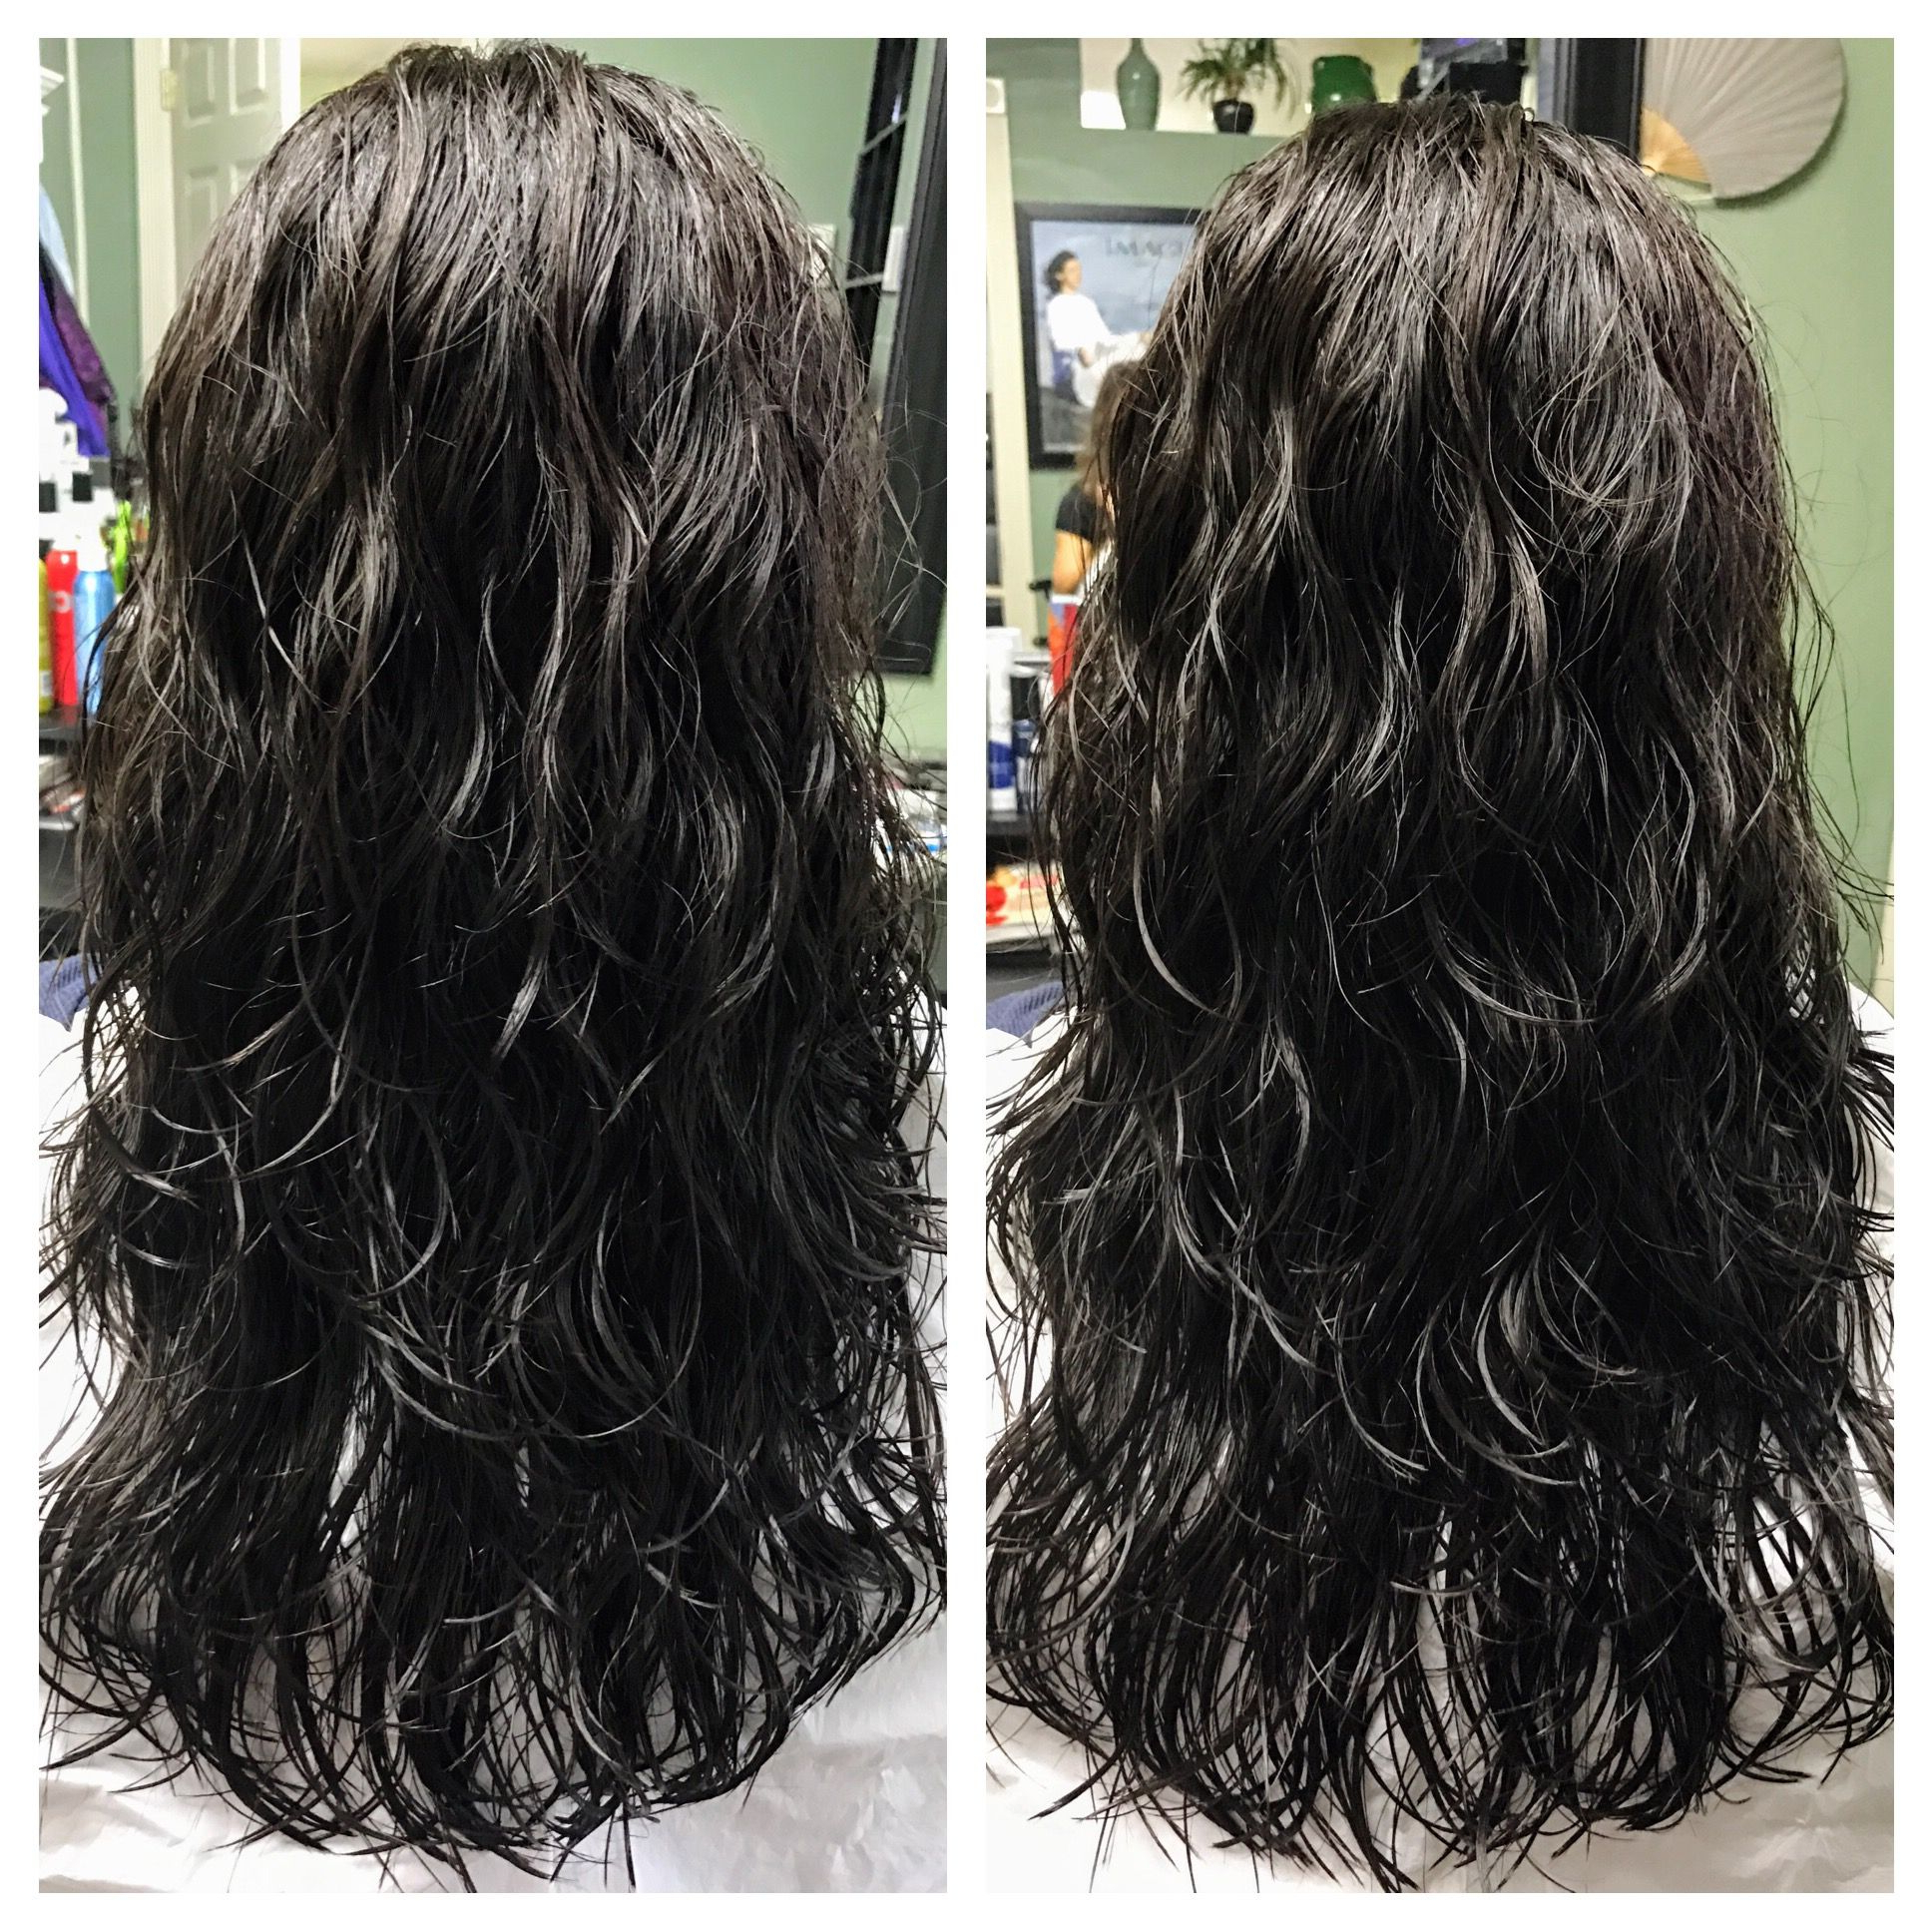 Barely Beach Wave Perm With Multi Layers (View 16 of 20)